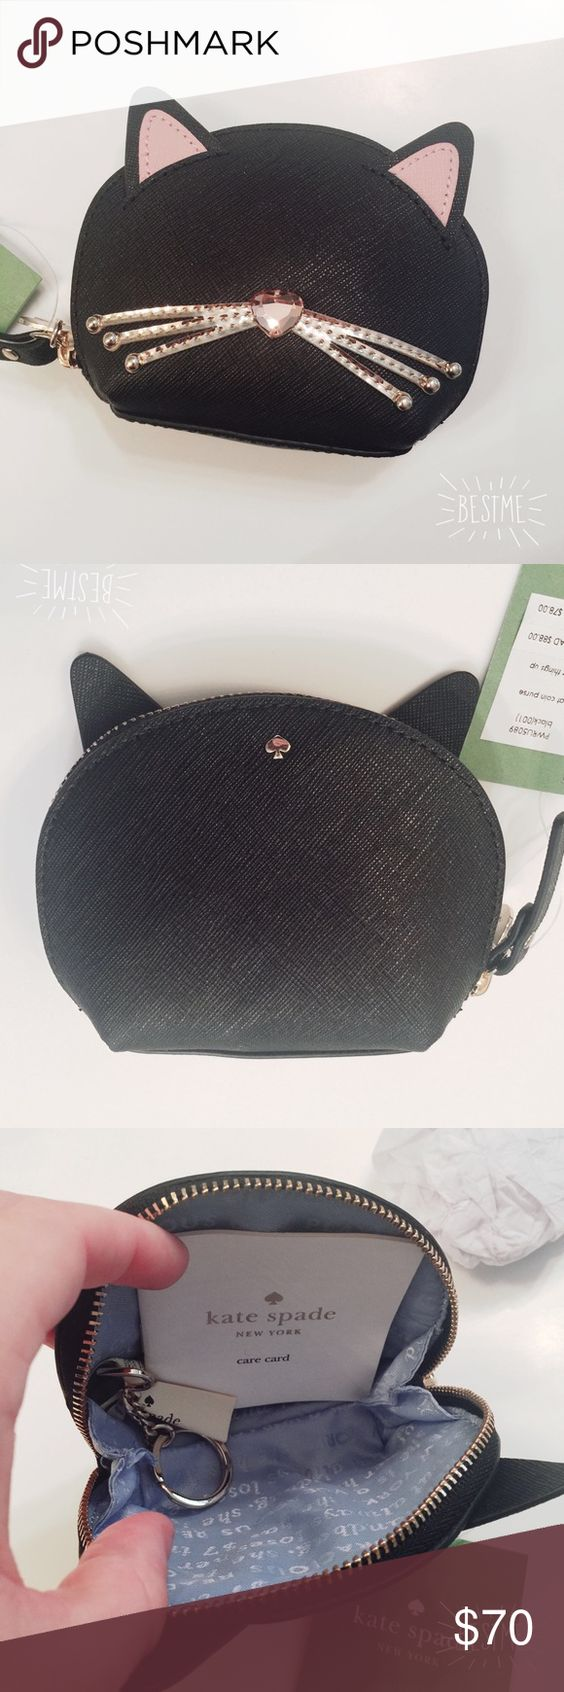 ❌ SOLD! kate spade cat coin purse, BNWT!  kate spade cat coin purse, BNWT!  This item is brand new with tags and comes in original packaging. No trades. kate spade Bags